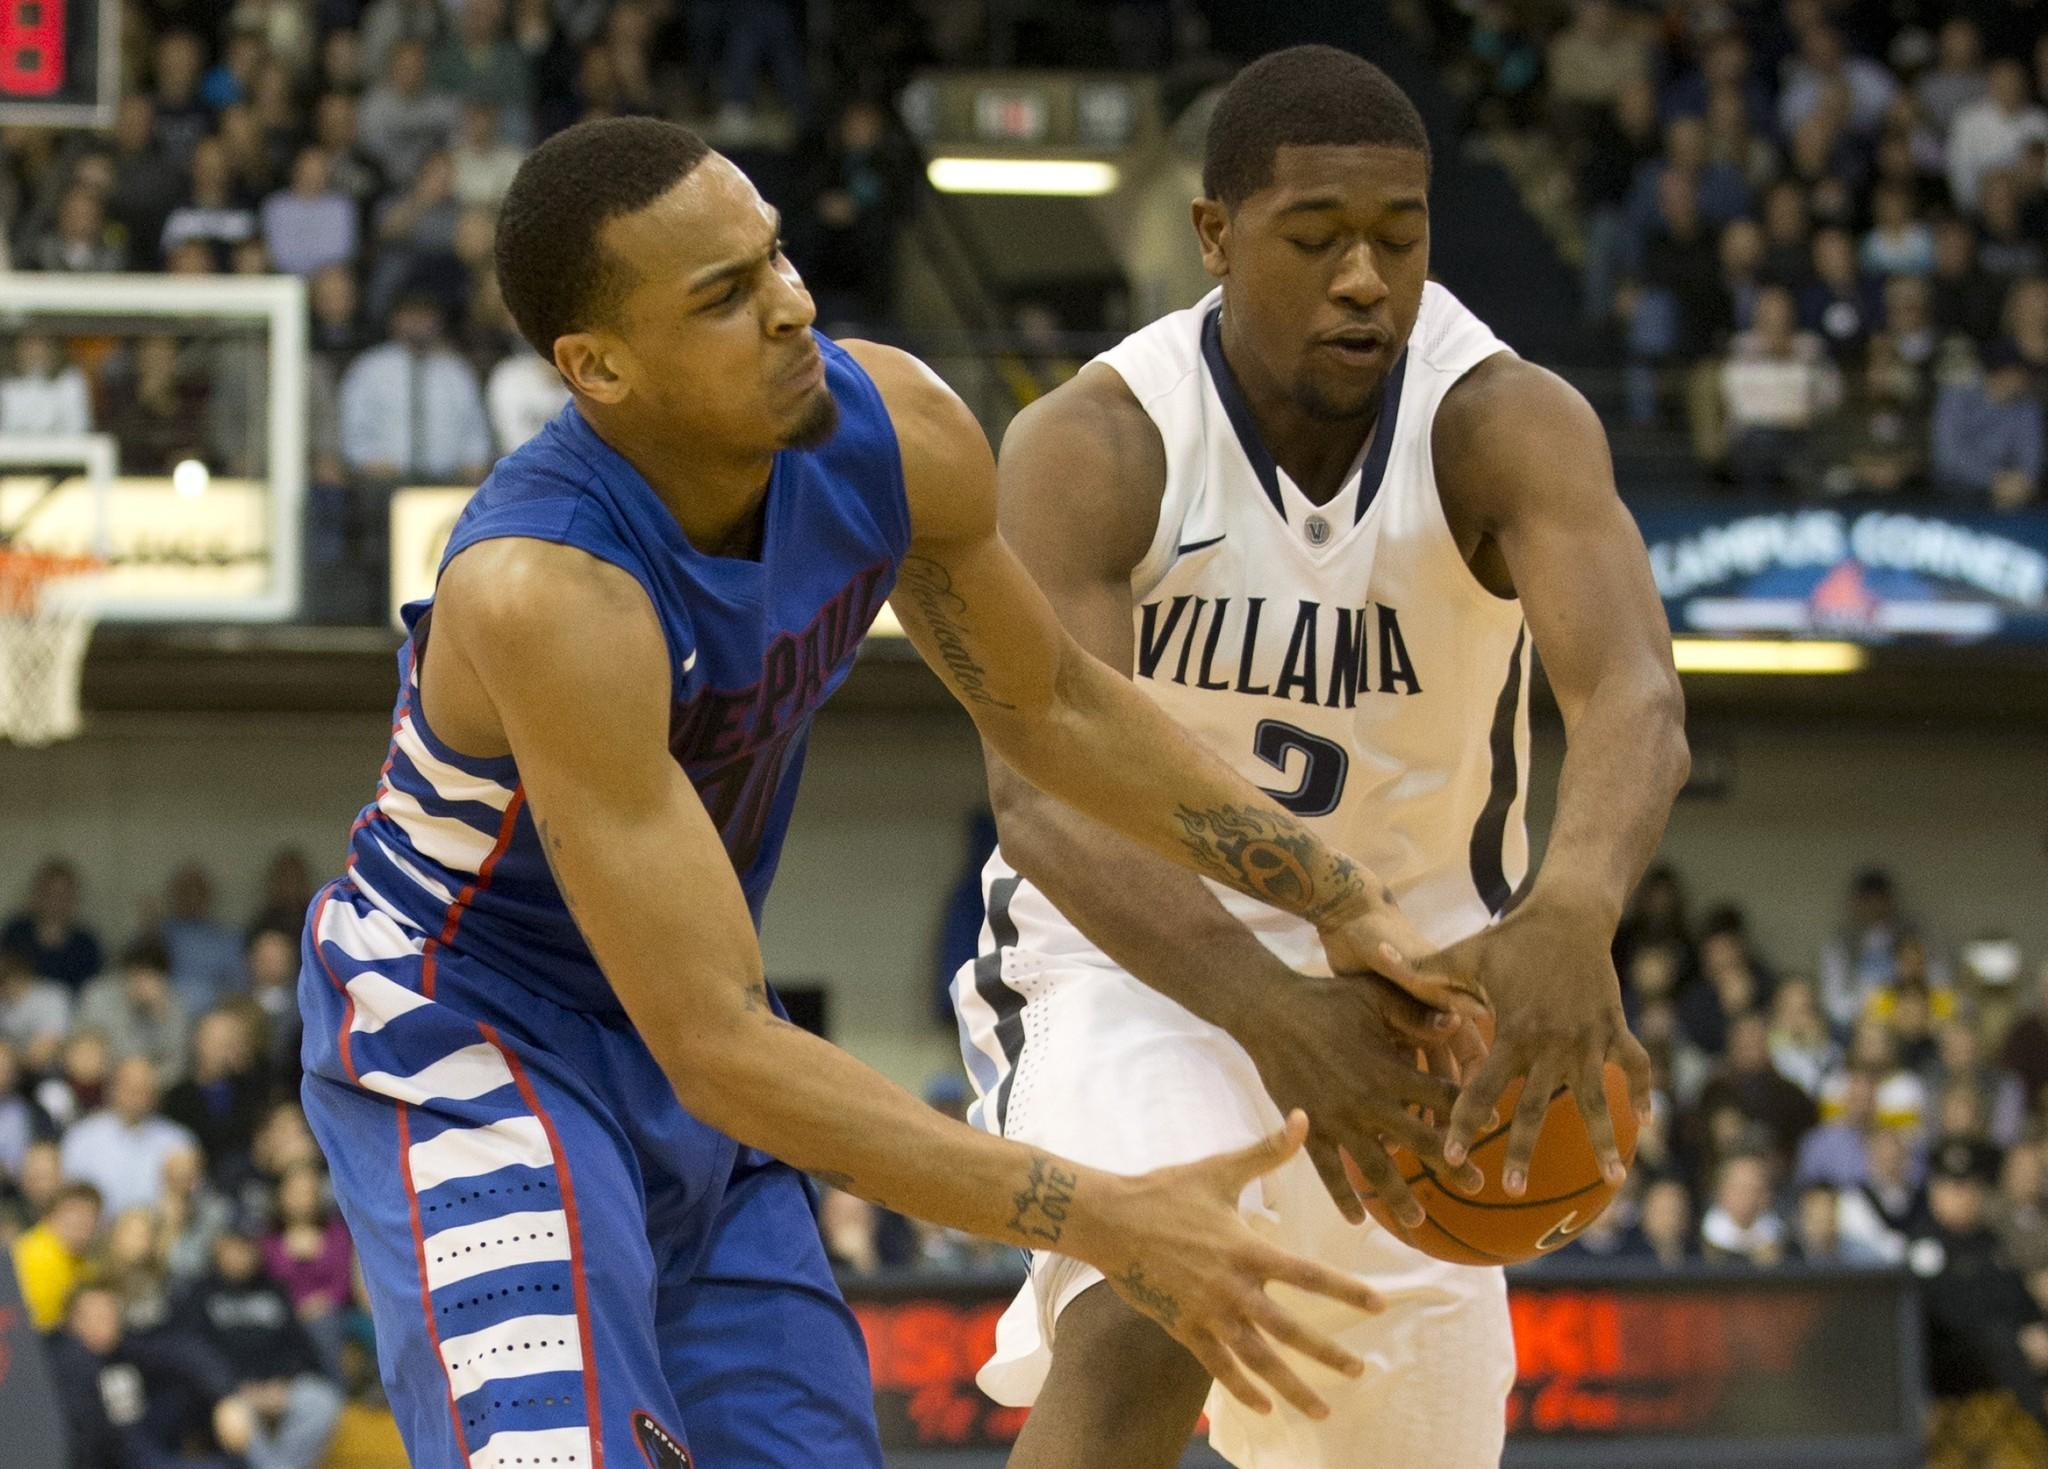 Guard Brandon Young (left)of the DePaul Blue Demons and forward Kris Jenkins of Villanova Wildcats both reach for the ball.